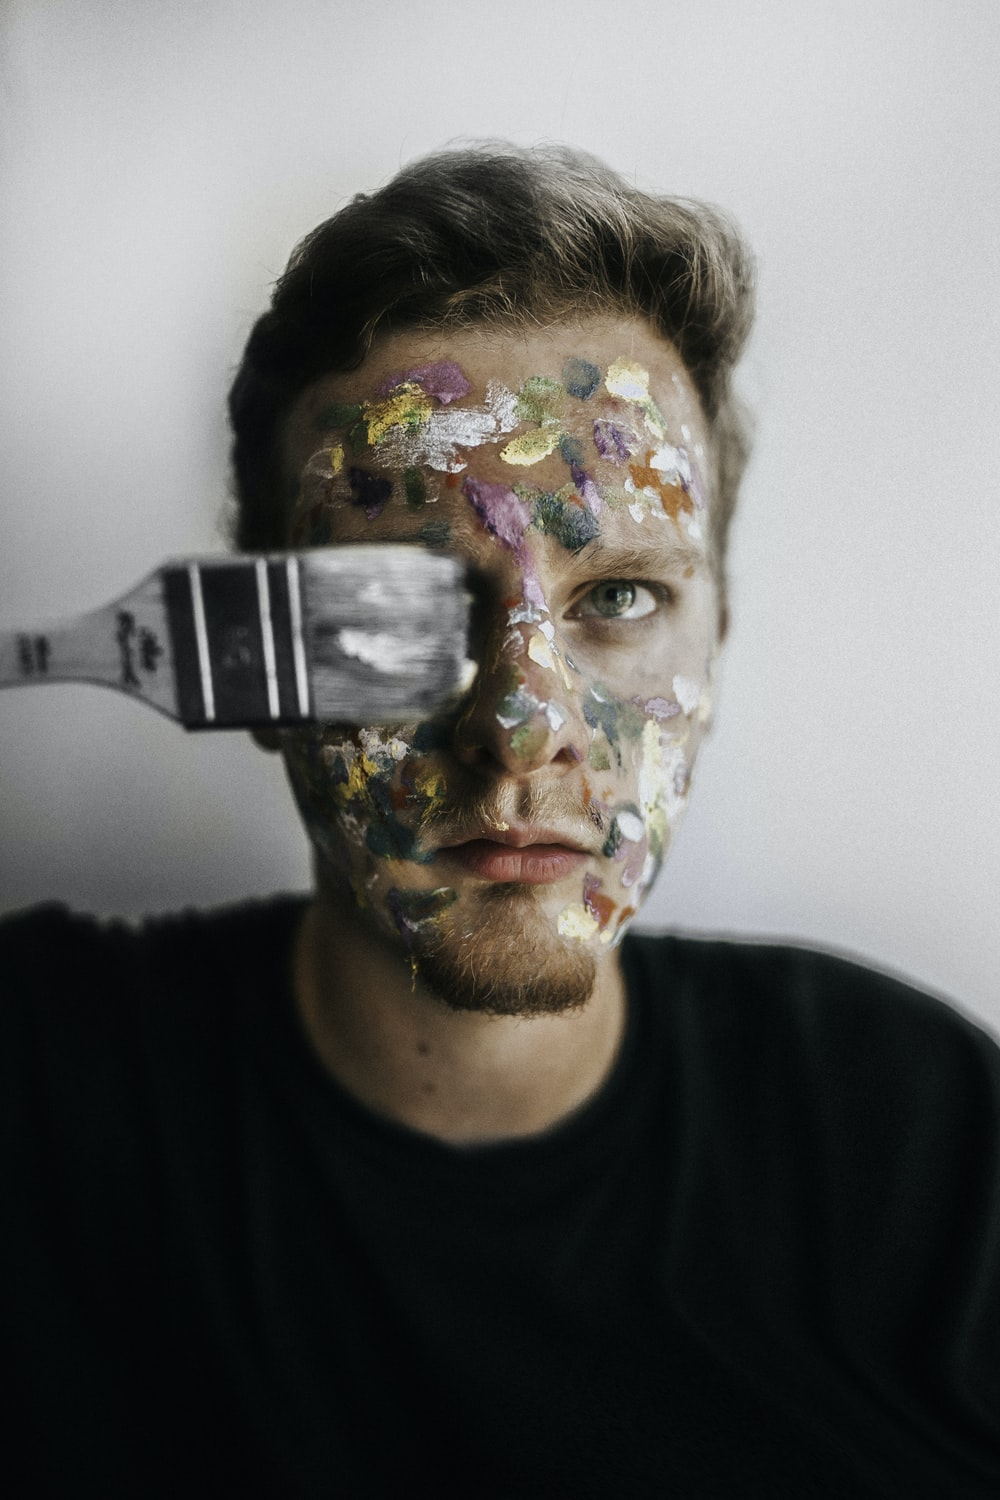 man wearing black shirt with paint on his face with paintbrush covering his right eye